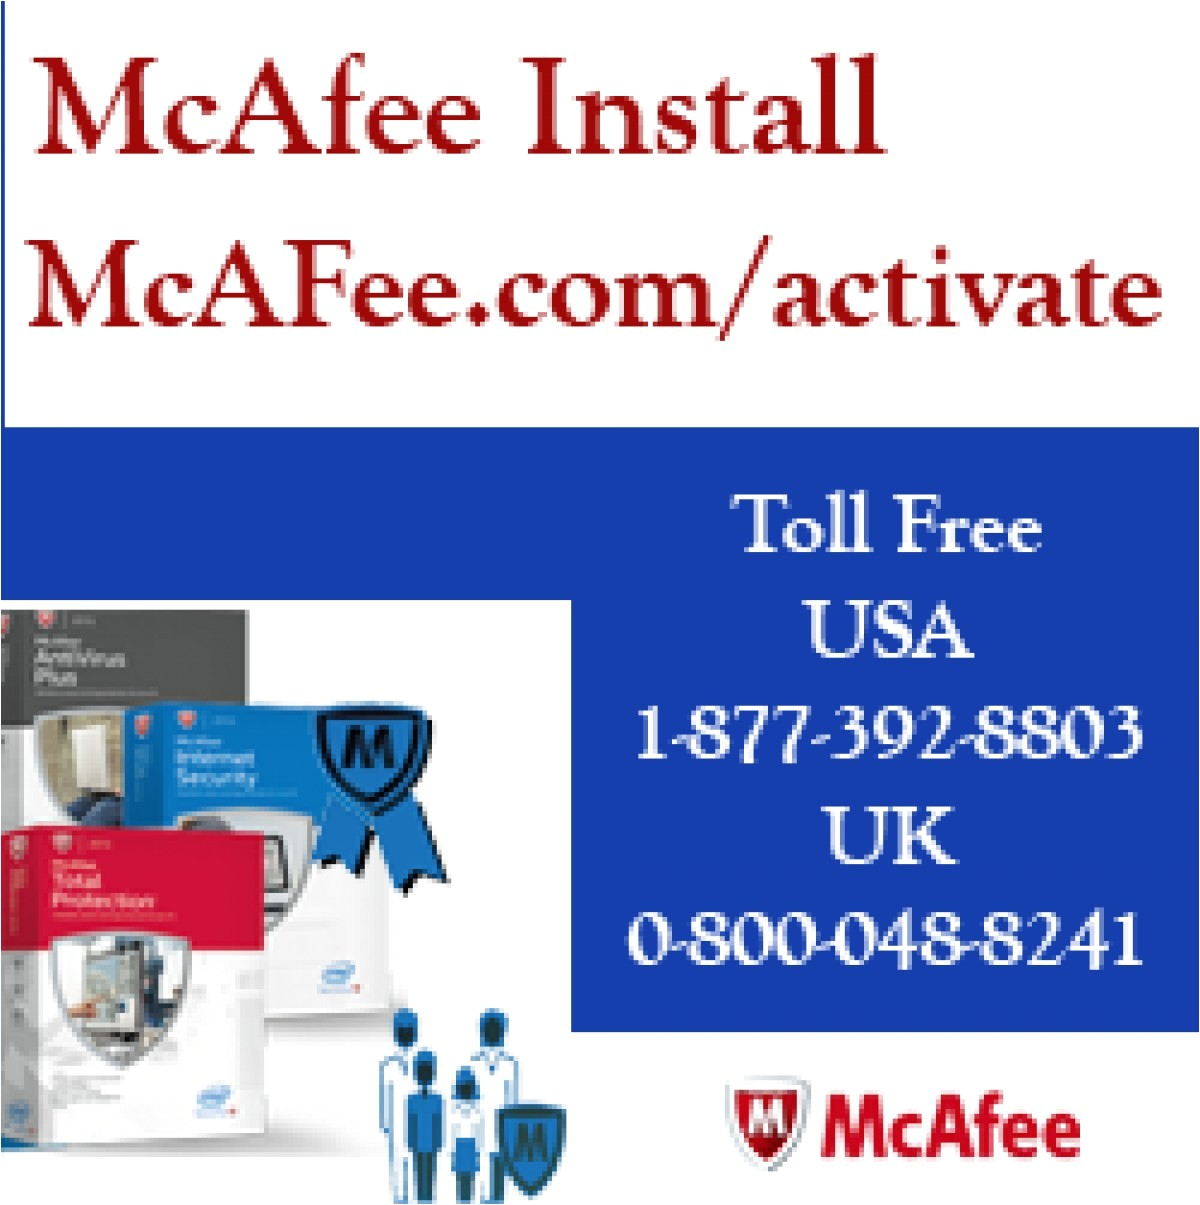 redeem macafee retail card http www mcafee com activate or call us 1 877 392 8803